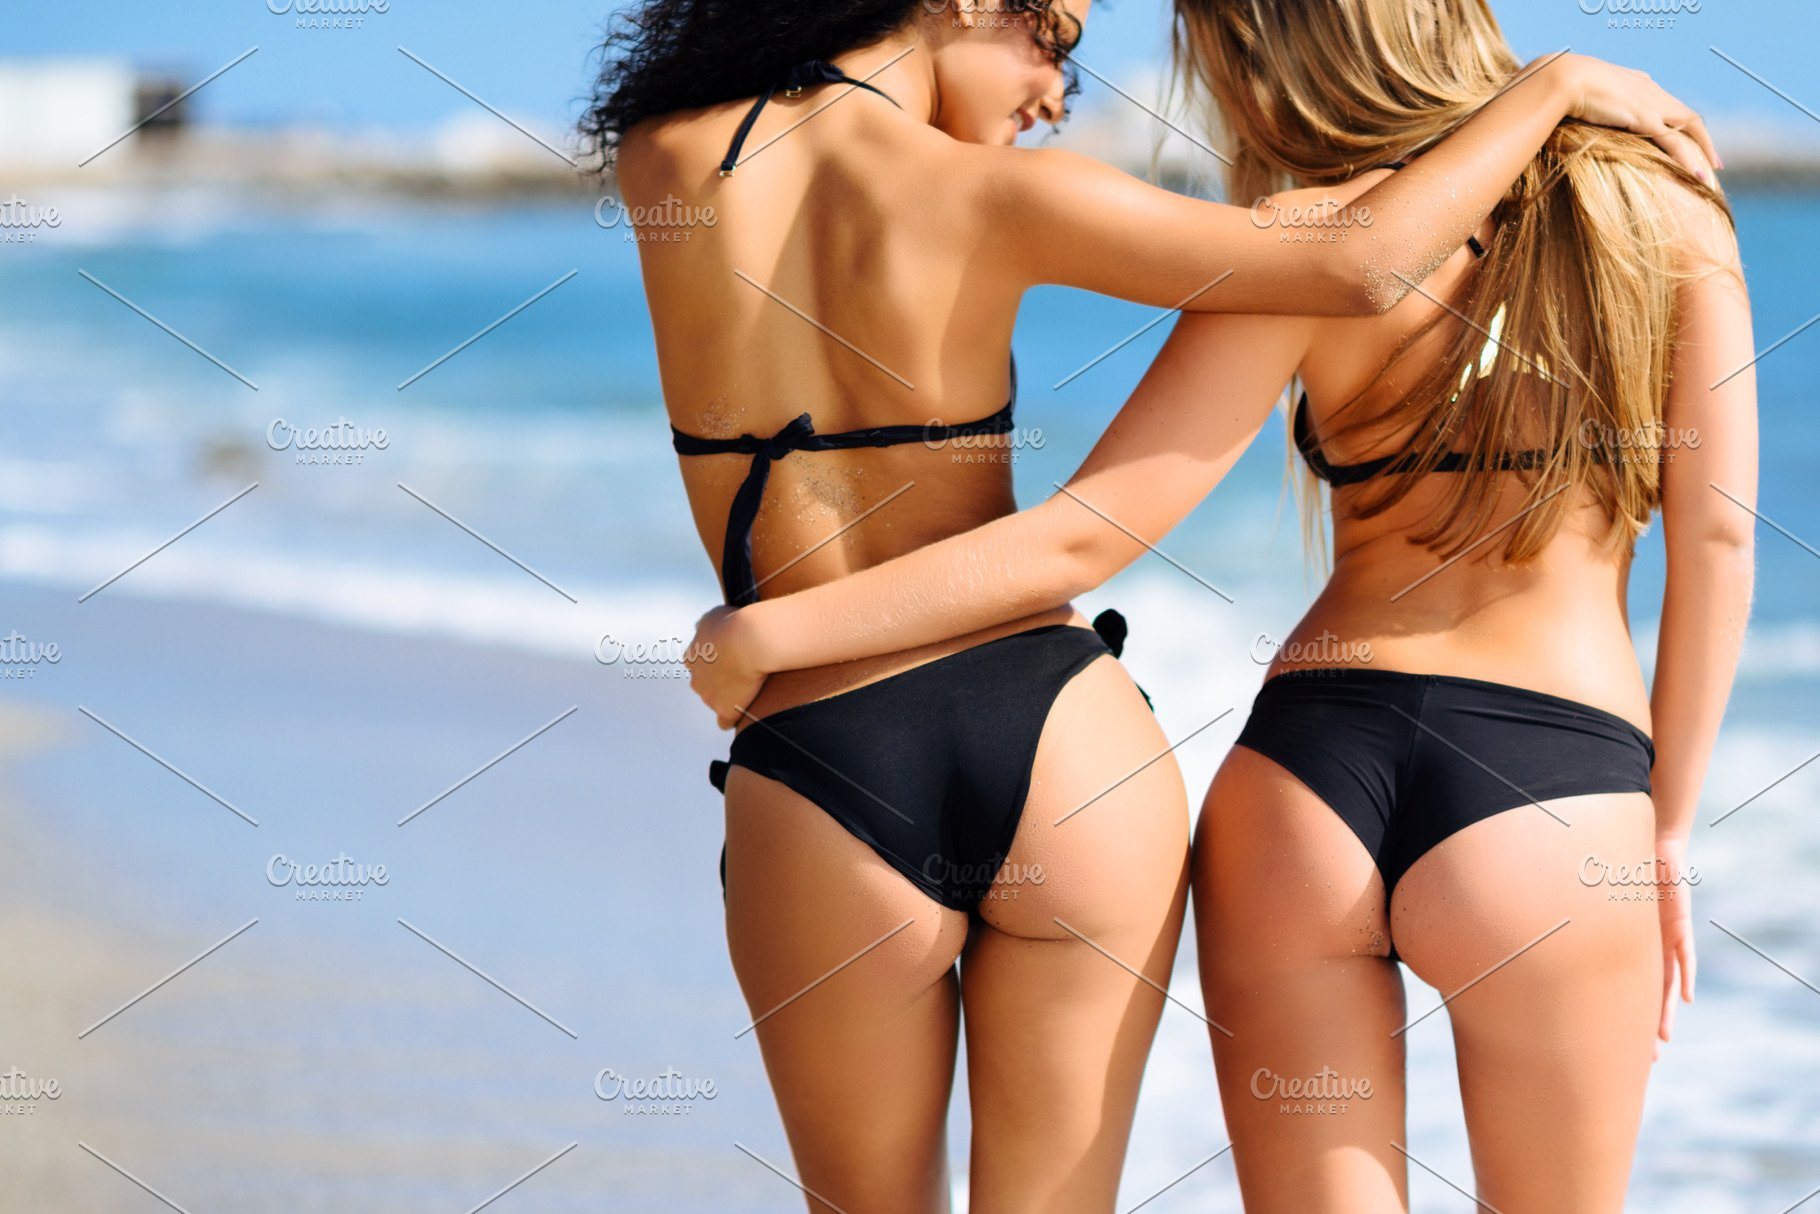 4f3e58da27f38 Young women in black bikini on beach ~ People Photos ~ Creative Market